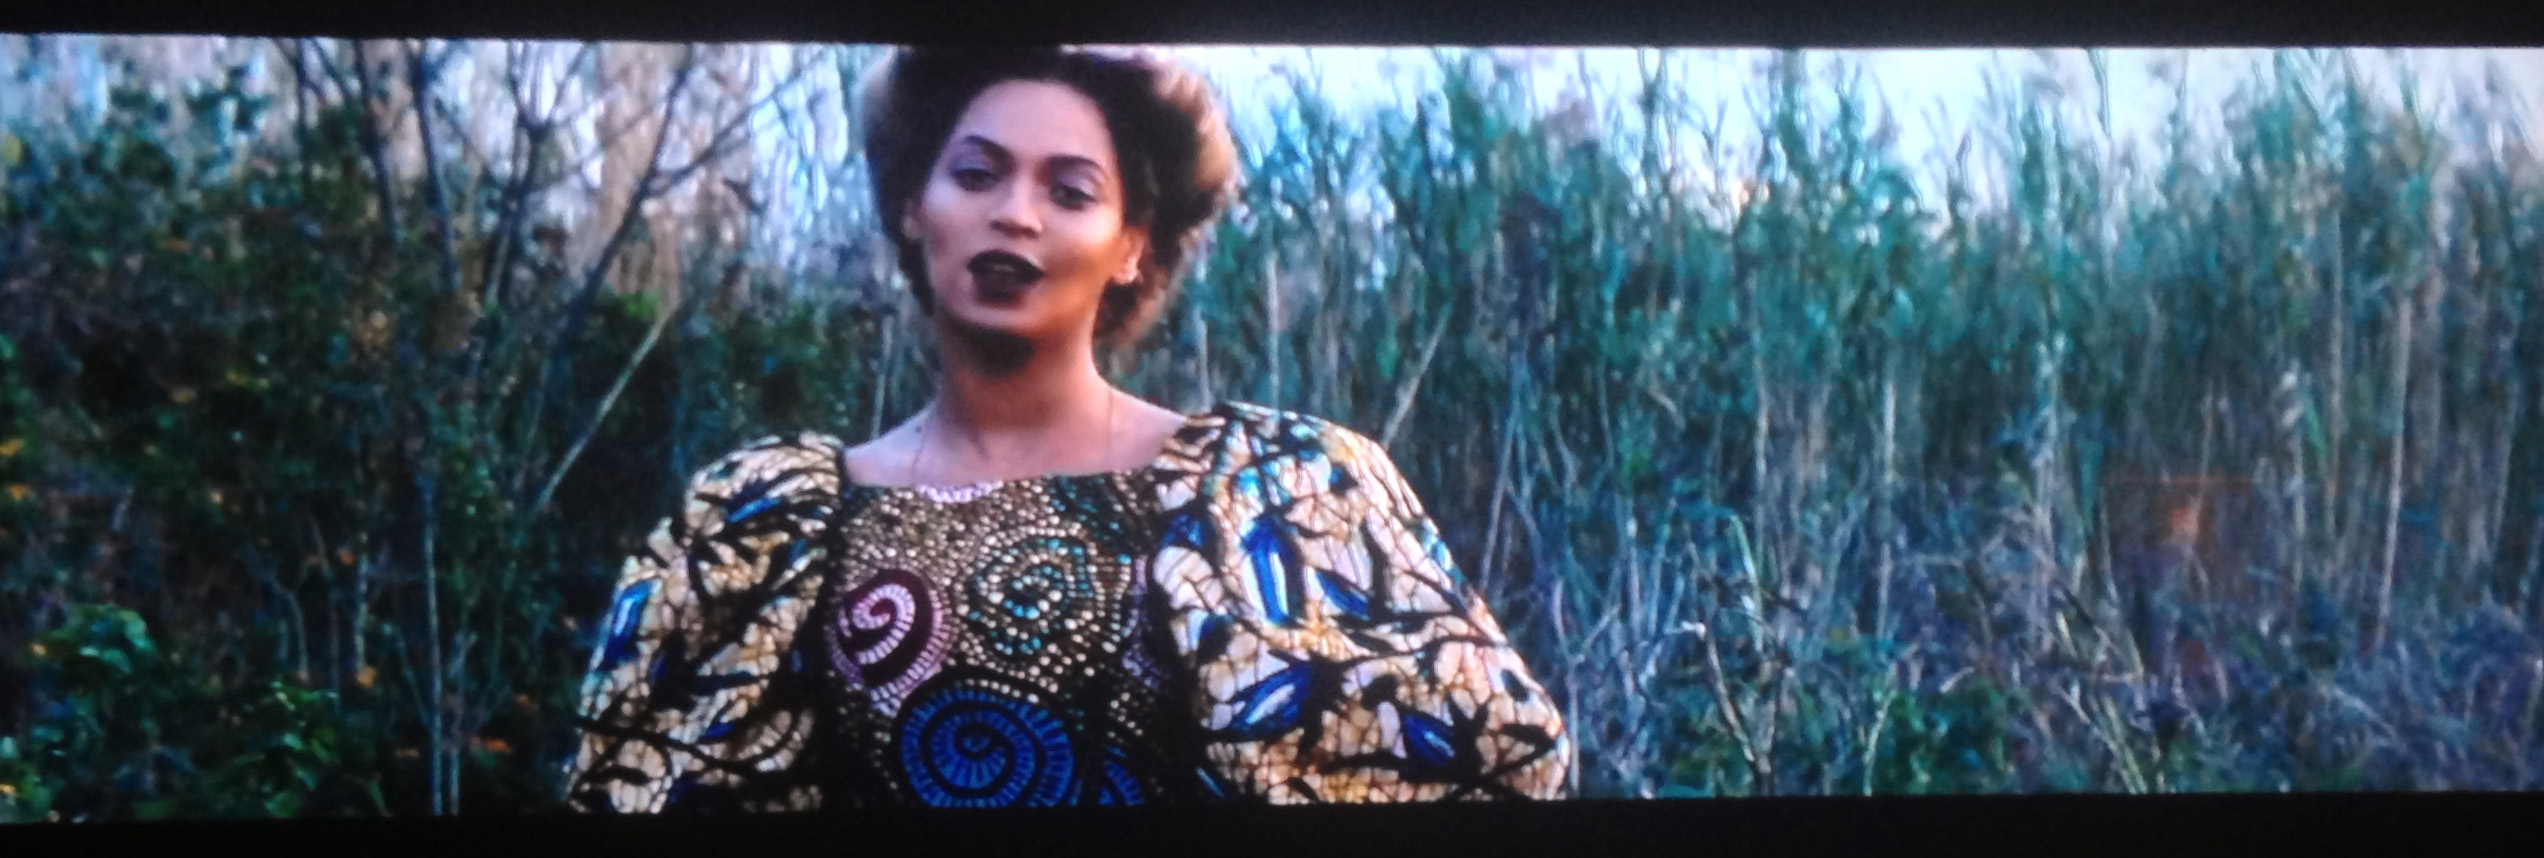 Beyonce's Lemonade and the Eco Negro Aesthetic / Darker than Green